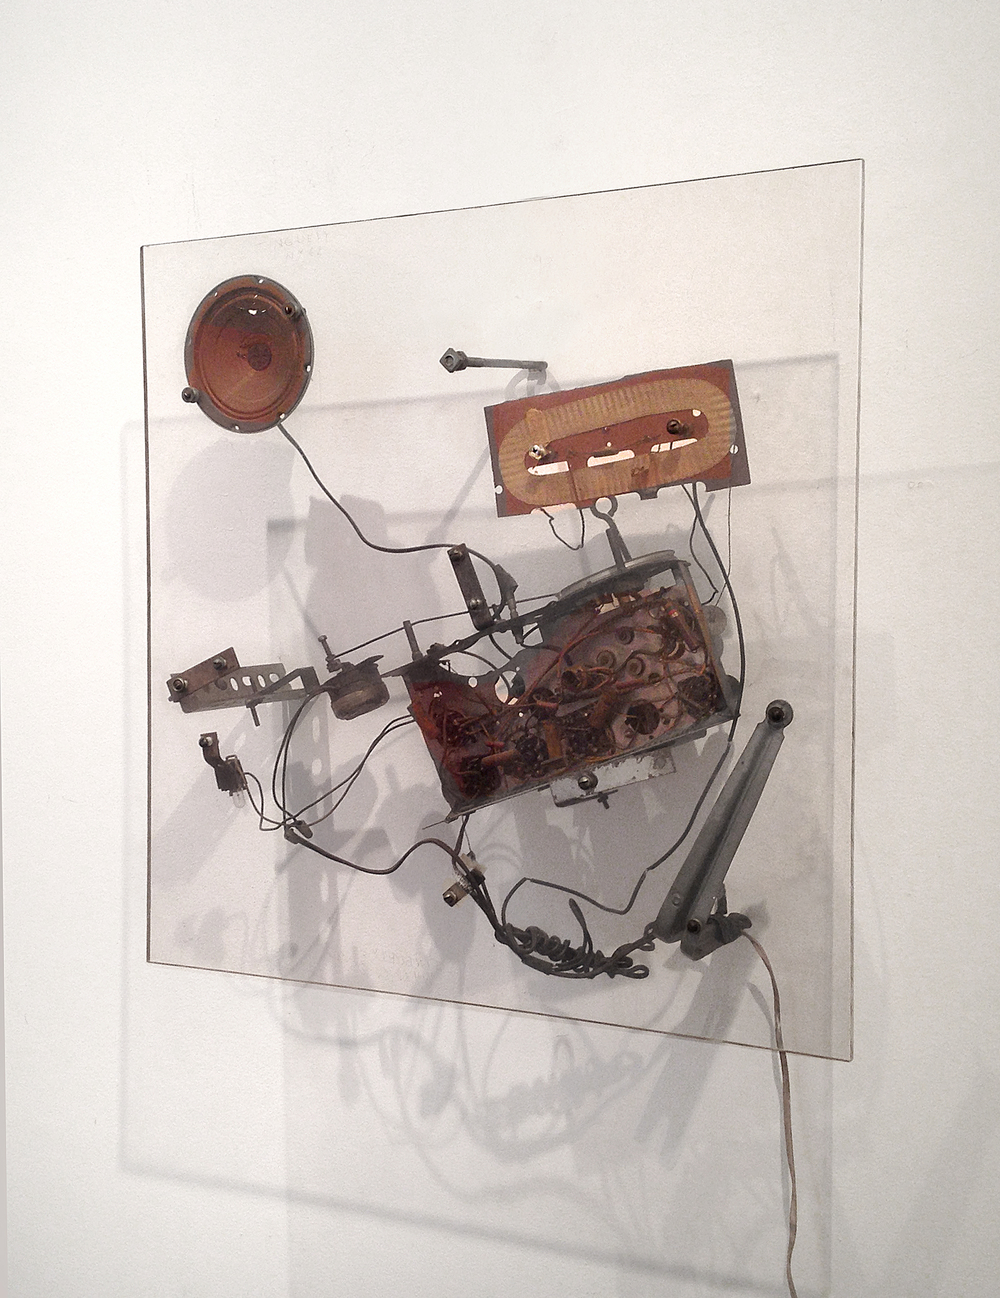 Jean Tinguely, Untitled, 1962